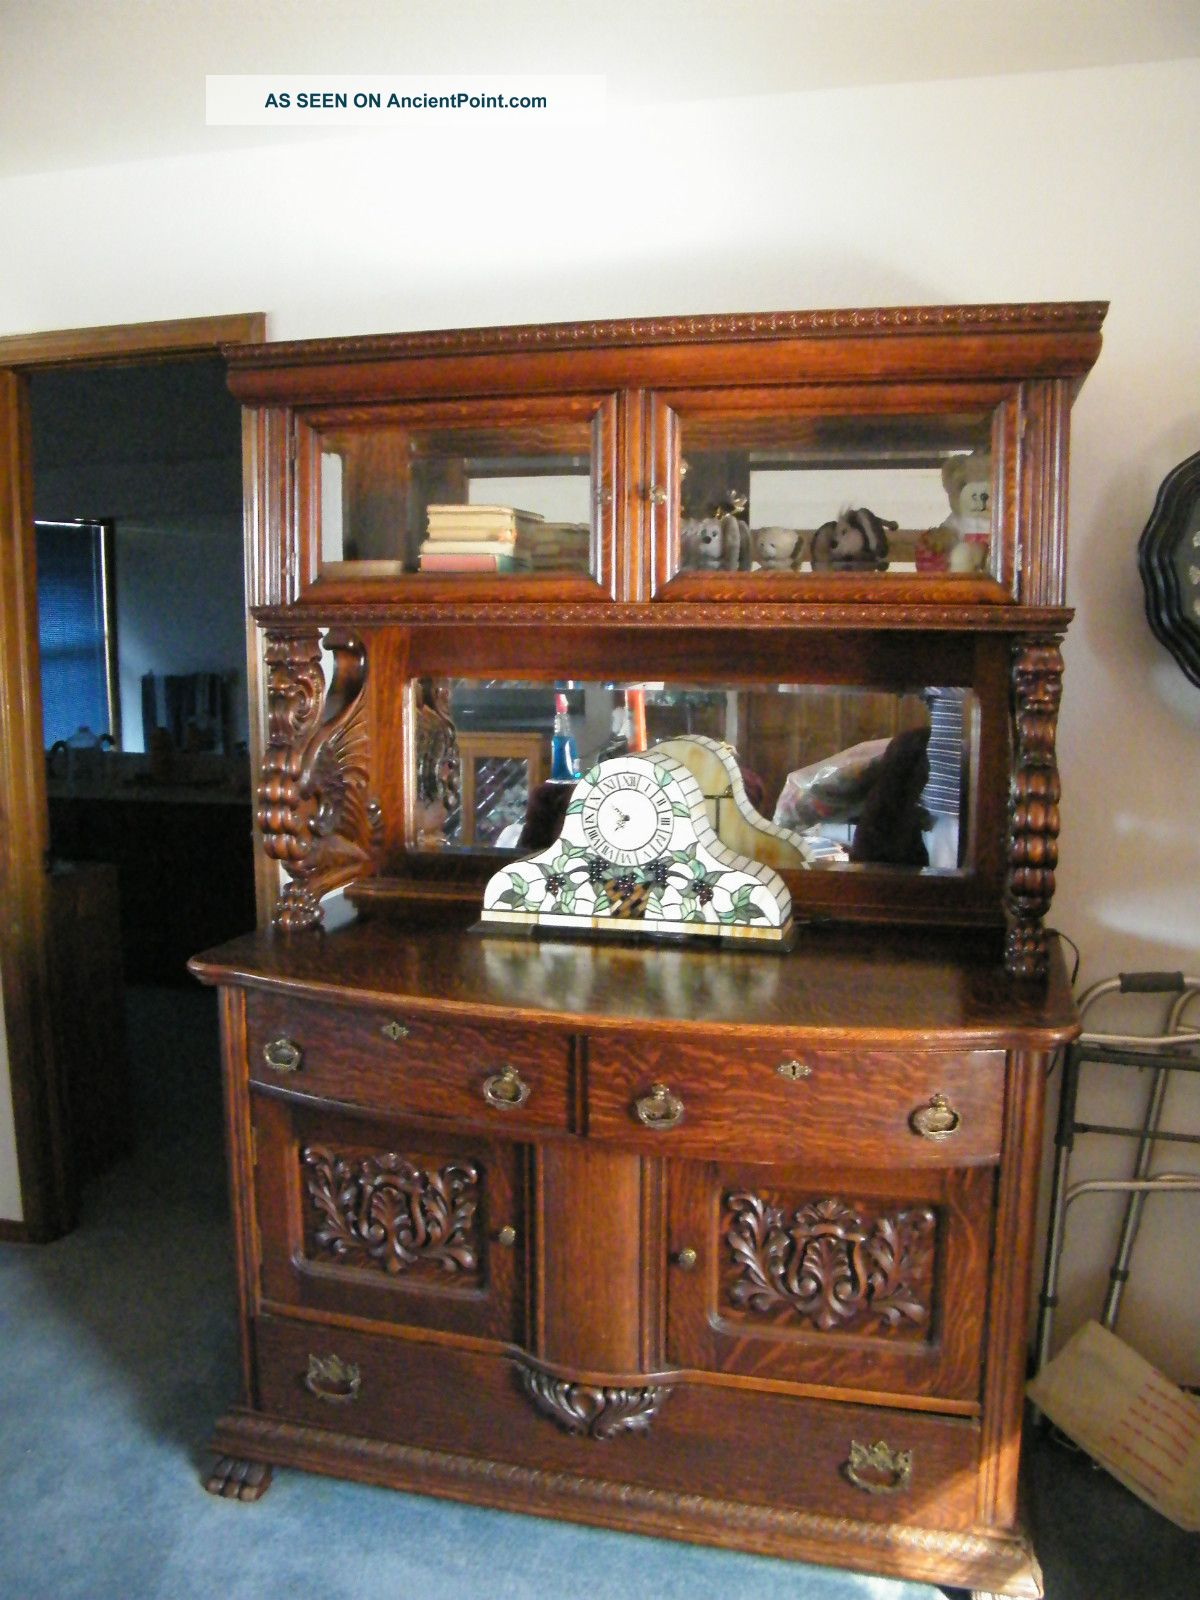 Qtr.  Oak Sideboard W/full Griffins, , ,  China Cabinet,  Bevel Mirrors,  Huge Feet 1900-1950 photo